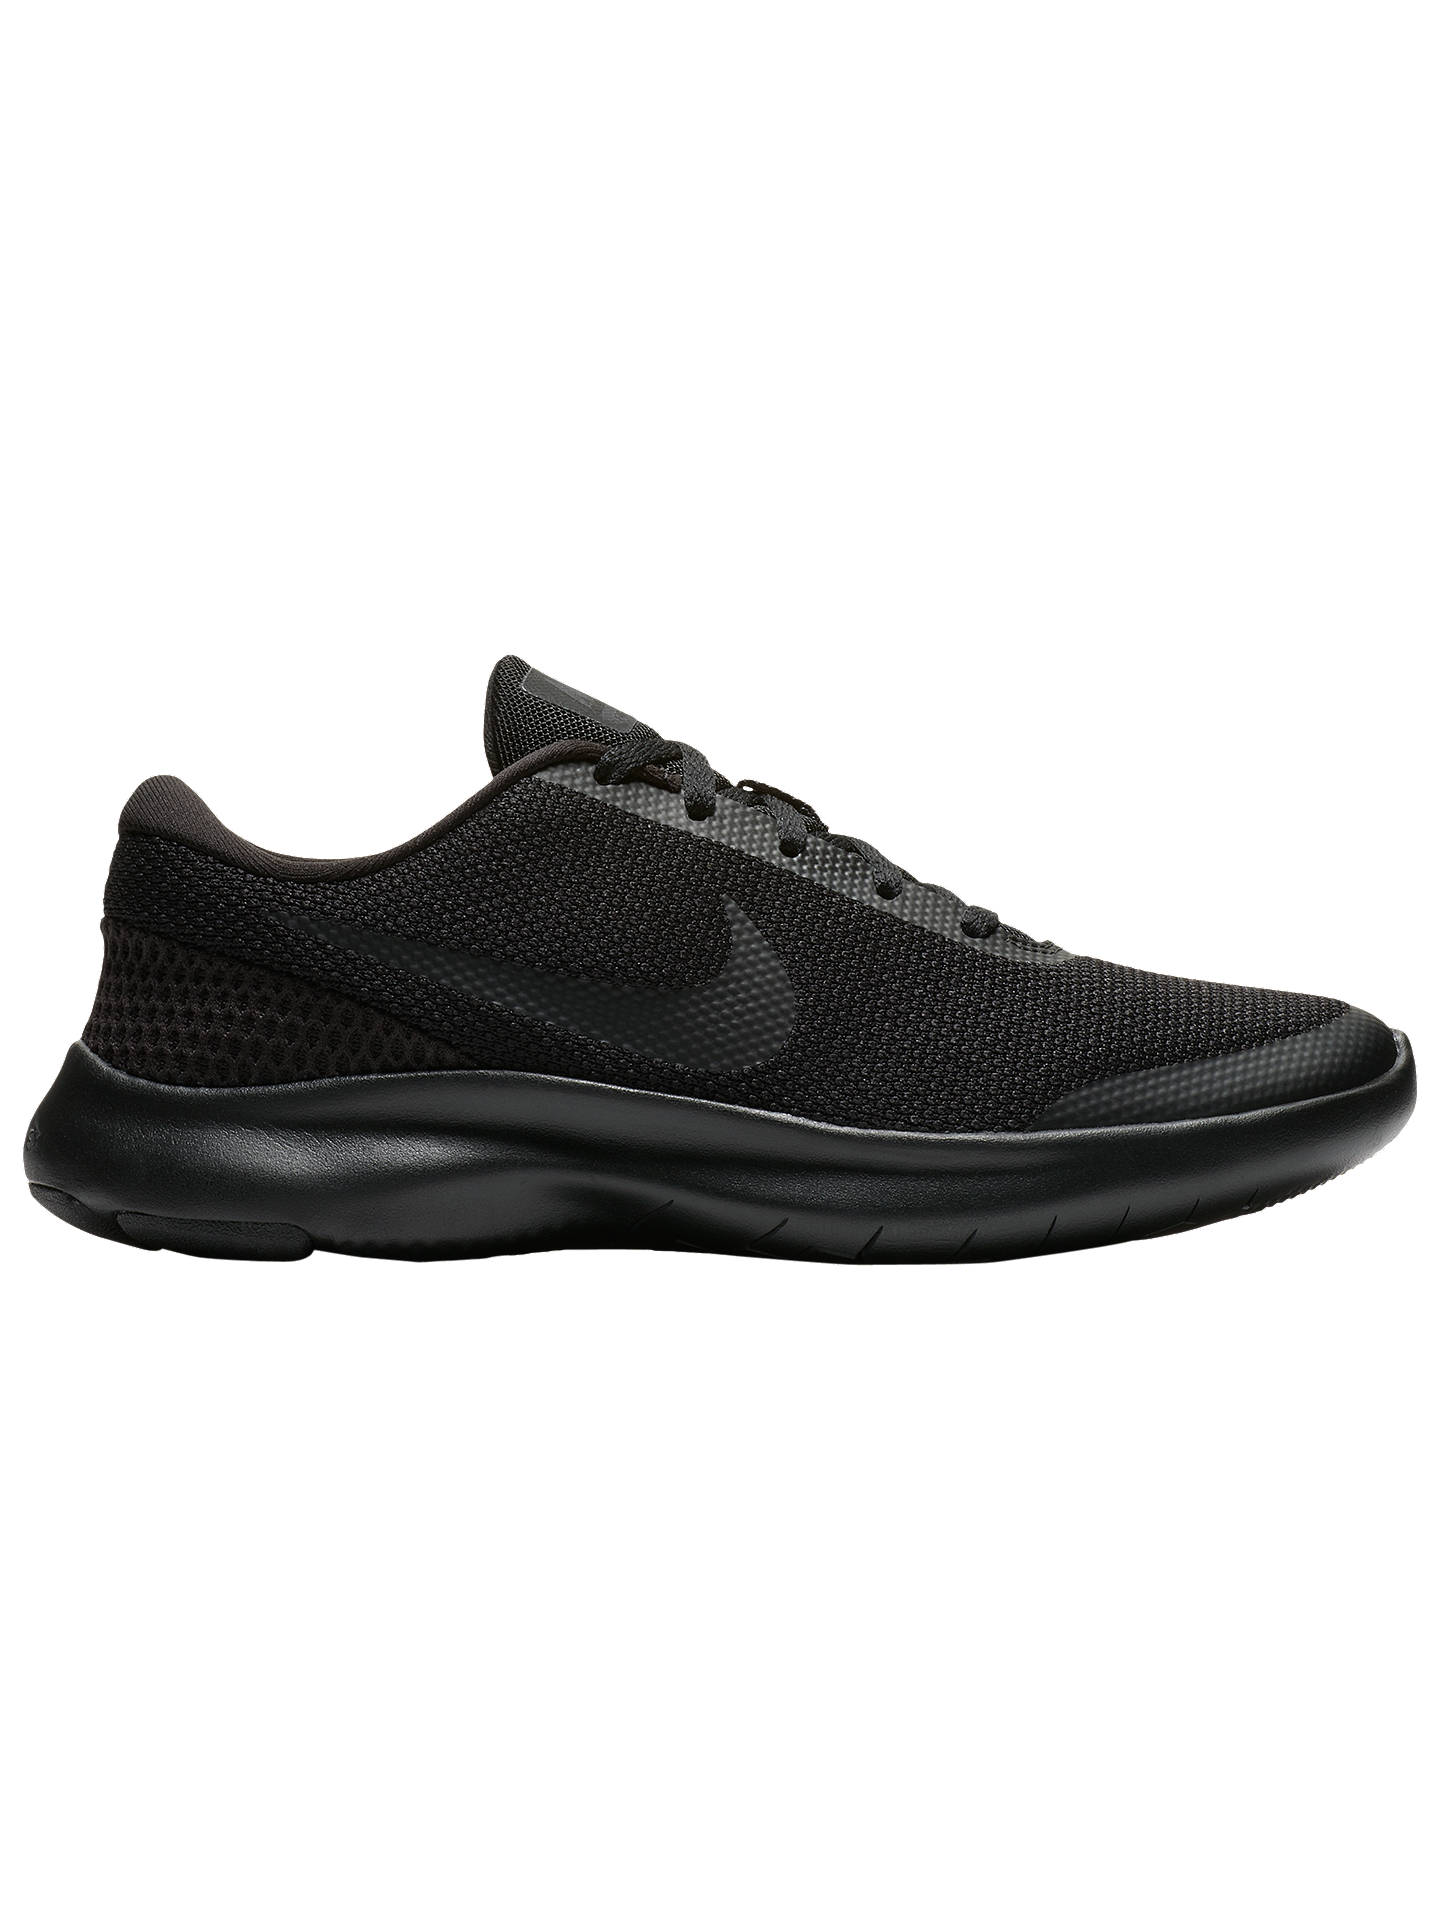 ab7d0a20ee2e Buy Nike Flex Experience RN 7 Women s Running Shoes